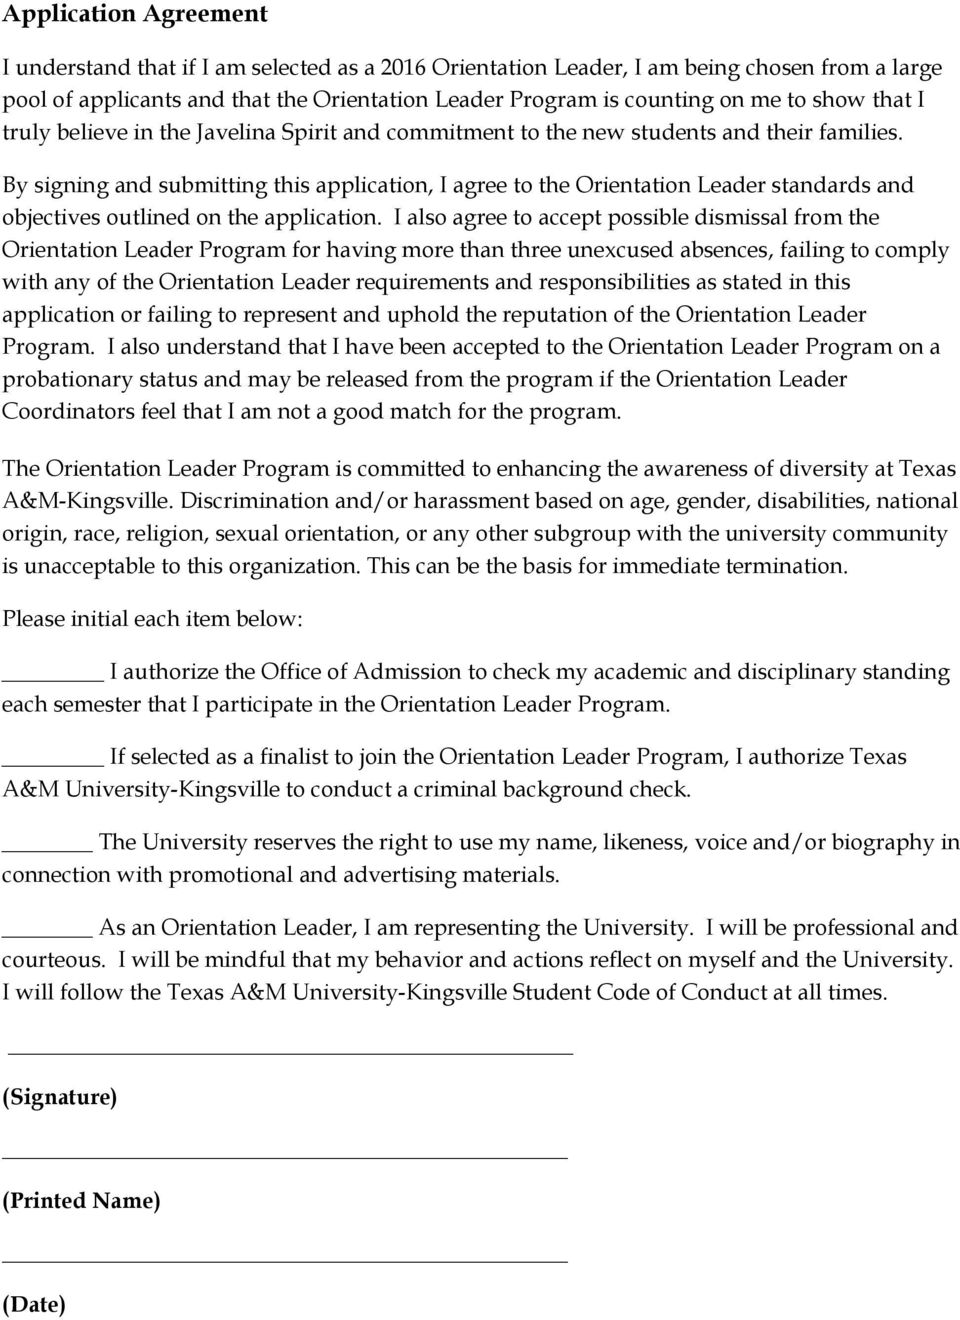 By signing and submitting this application, I agree to the Orientation Leader standards and objectives outlined on the application.